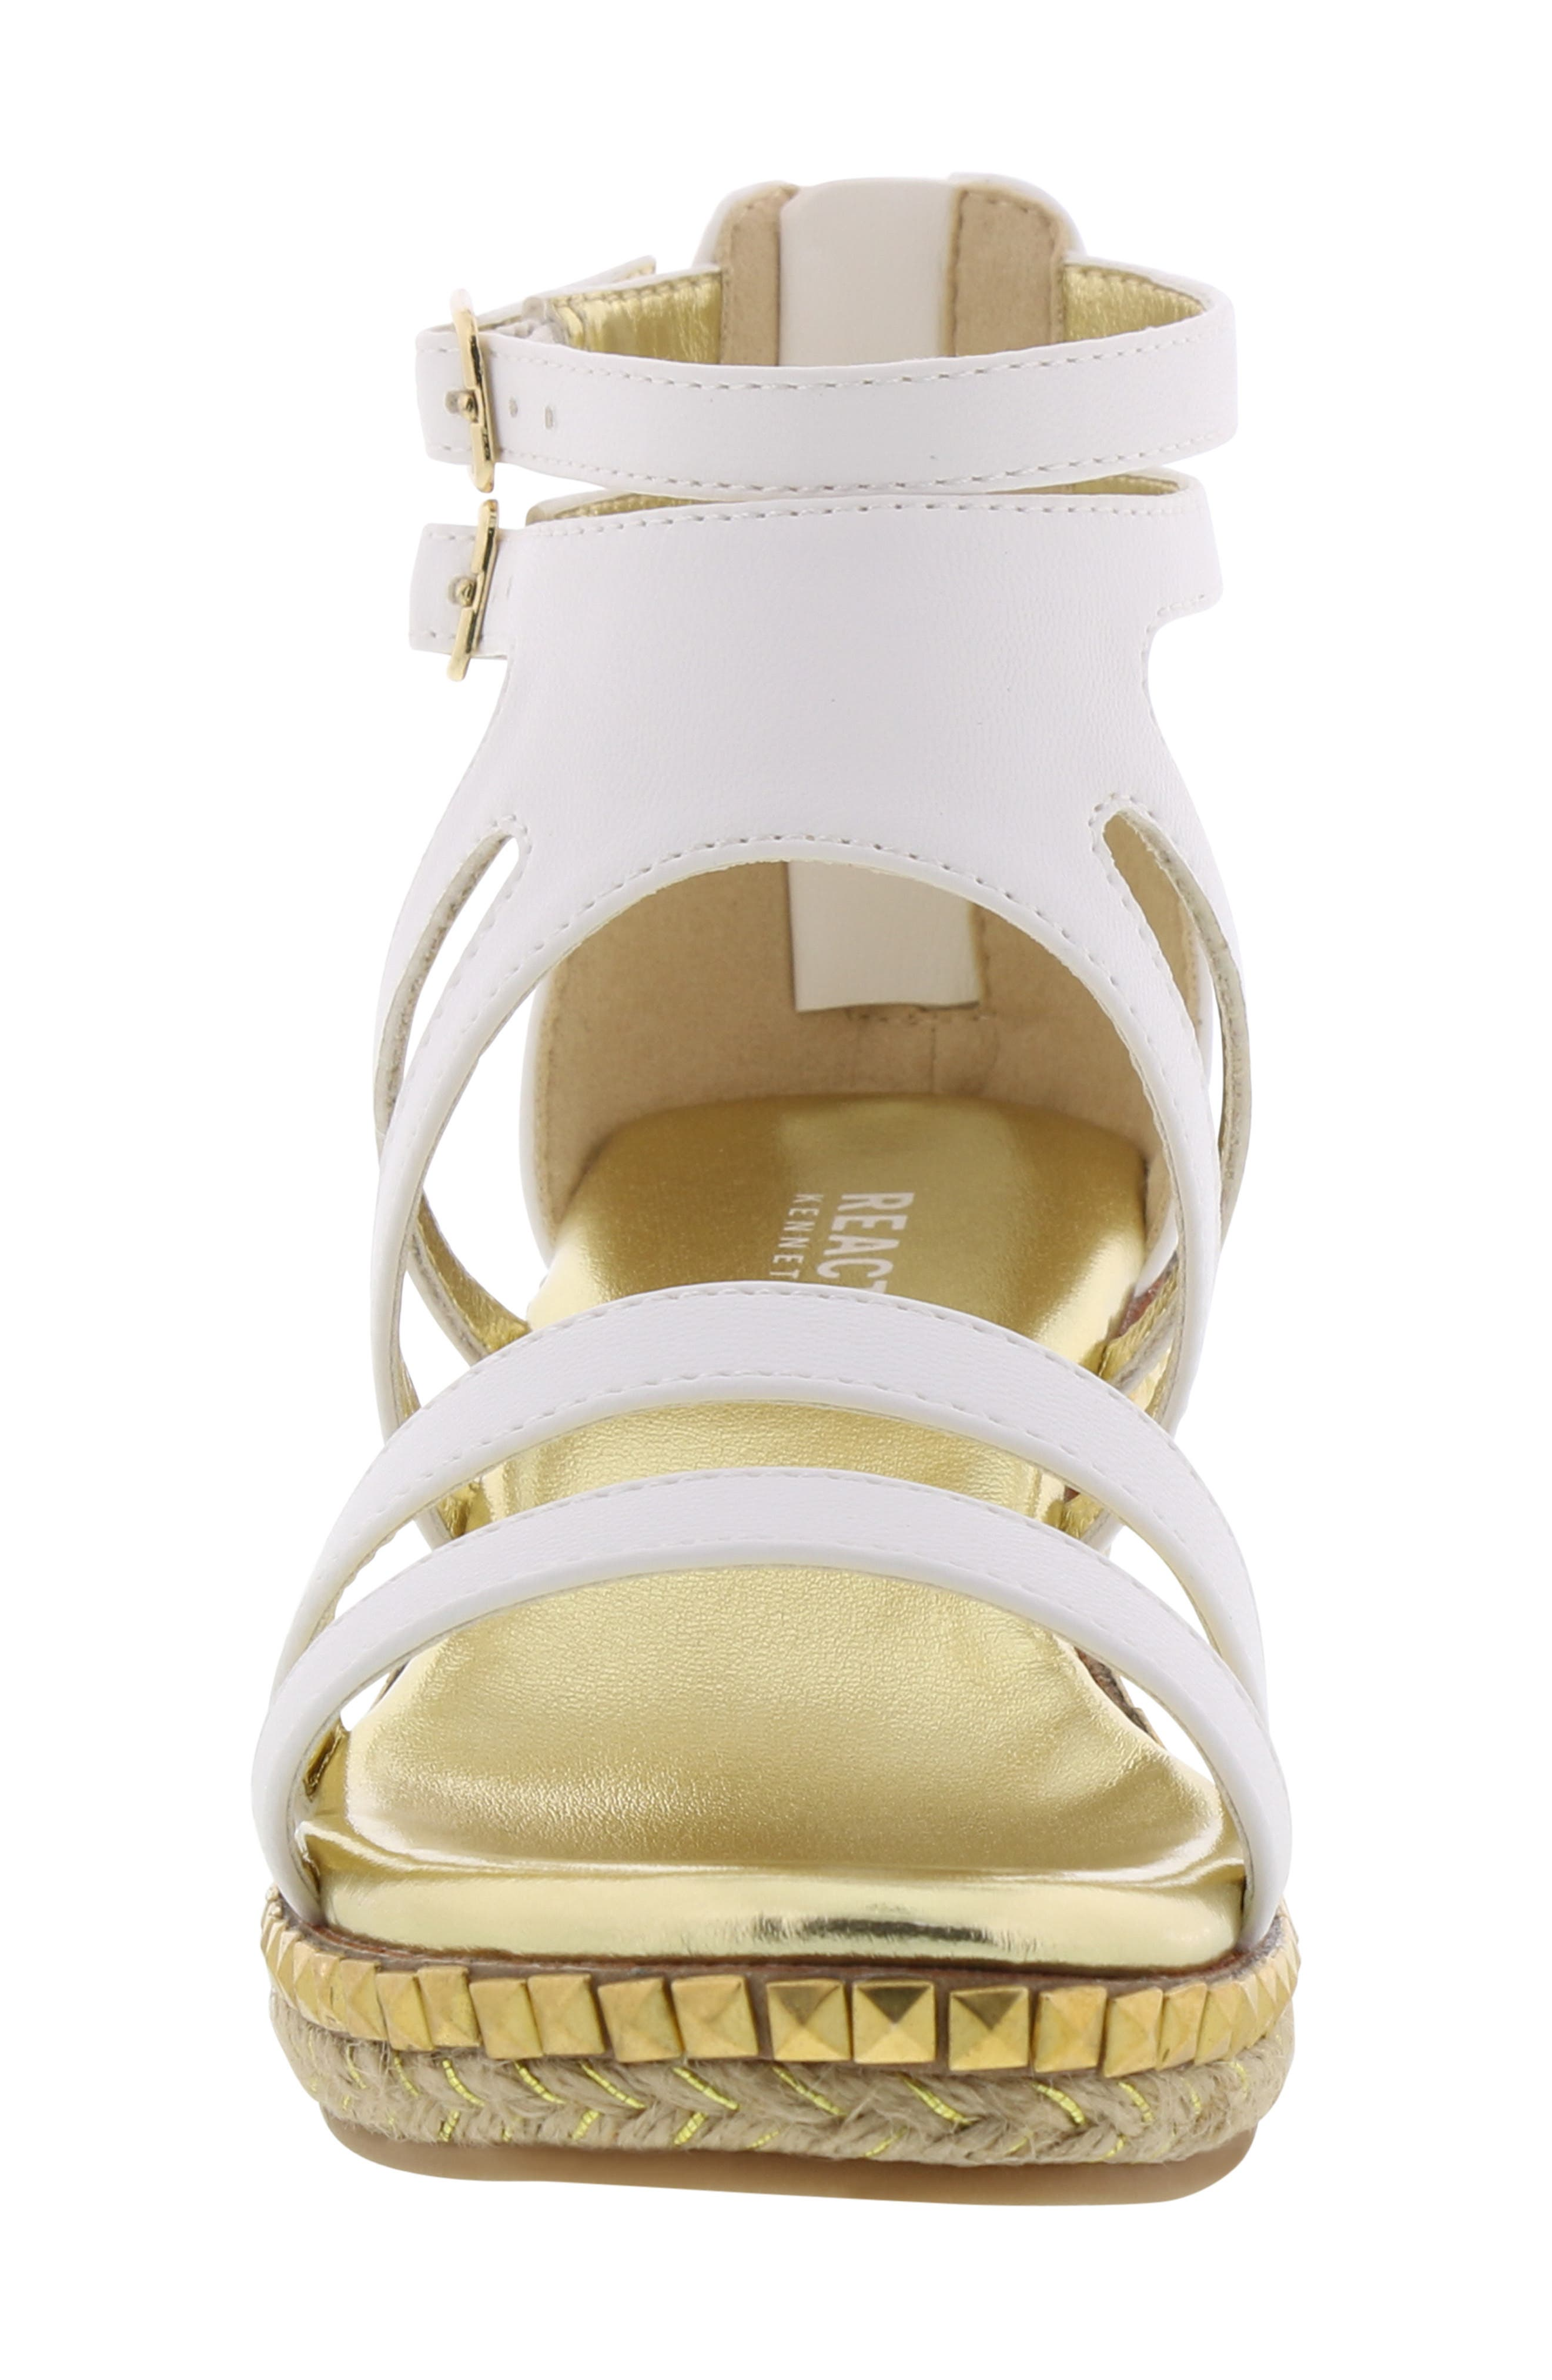 REACTION KENNETH COLE, Reed Splash Wedge Sandal, Alternate thumbnail 4, color, WHITE